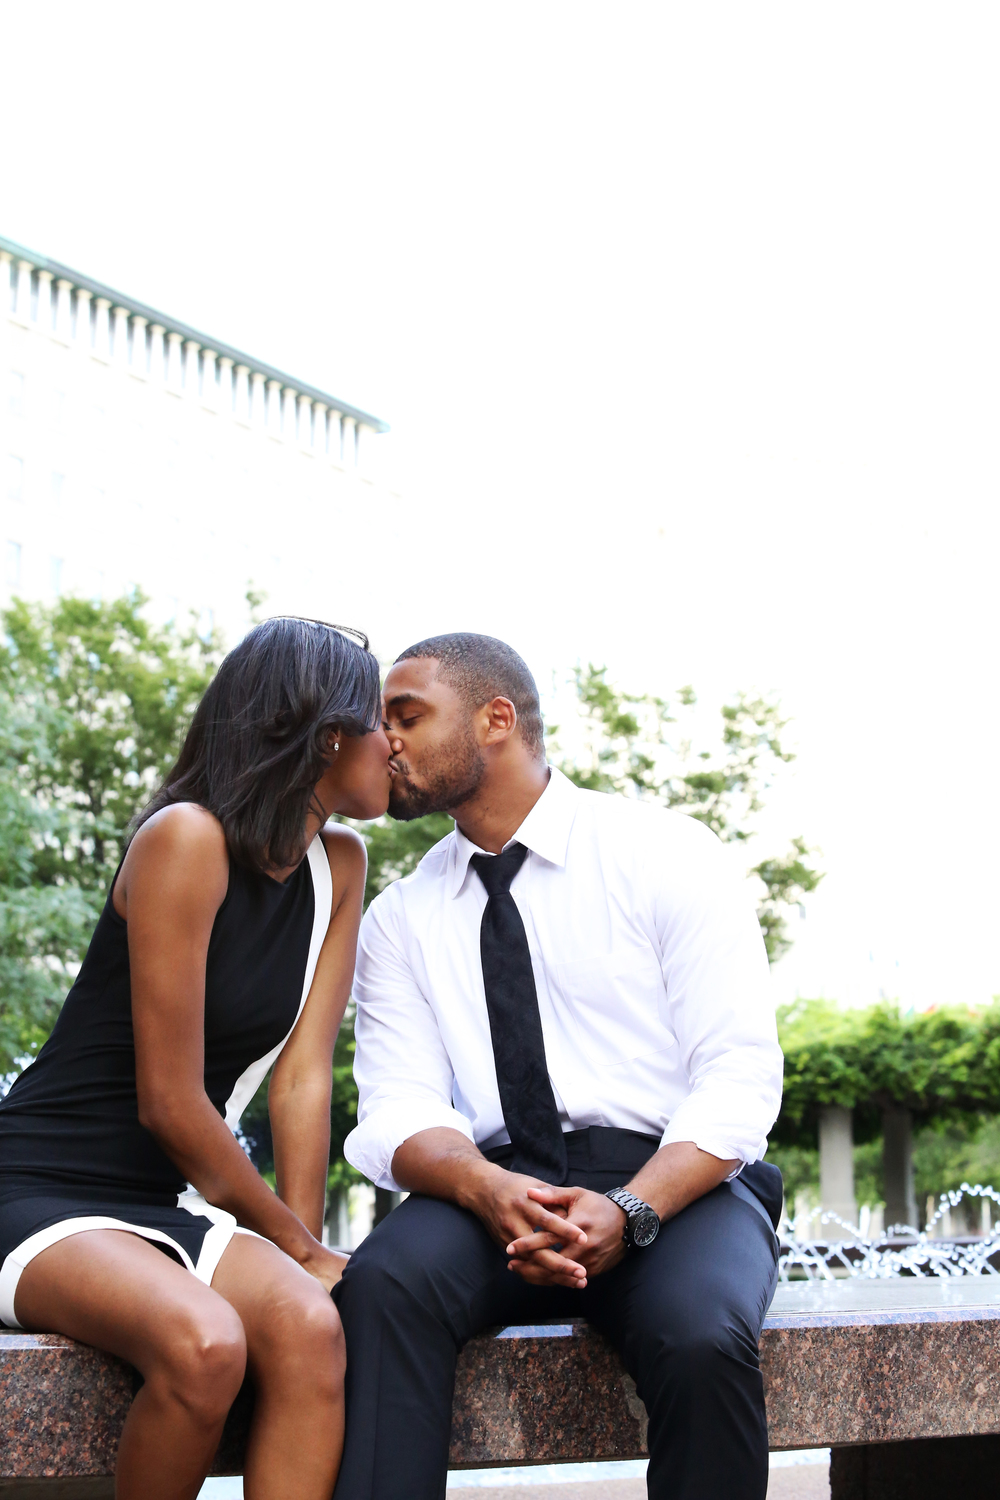 Joshua & Courtney | Downtown Cincinnati | Cleveland Wedding Photography 2